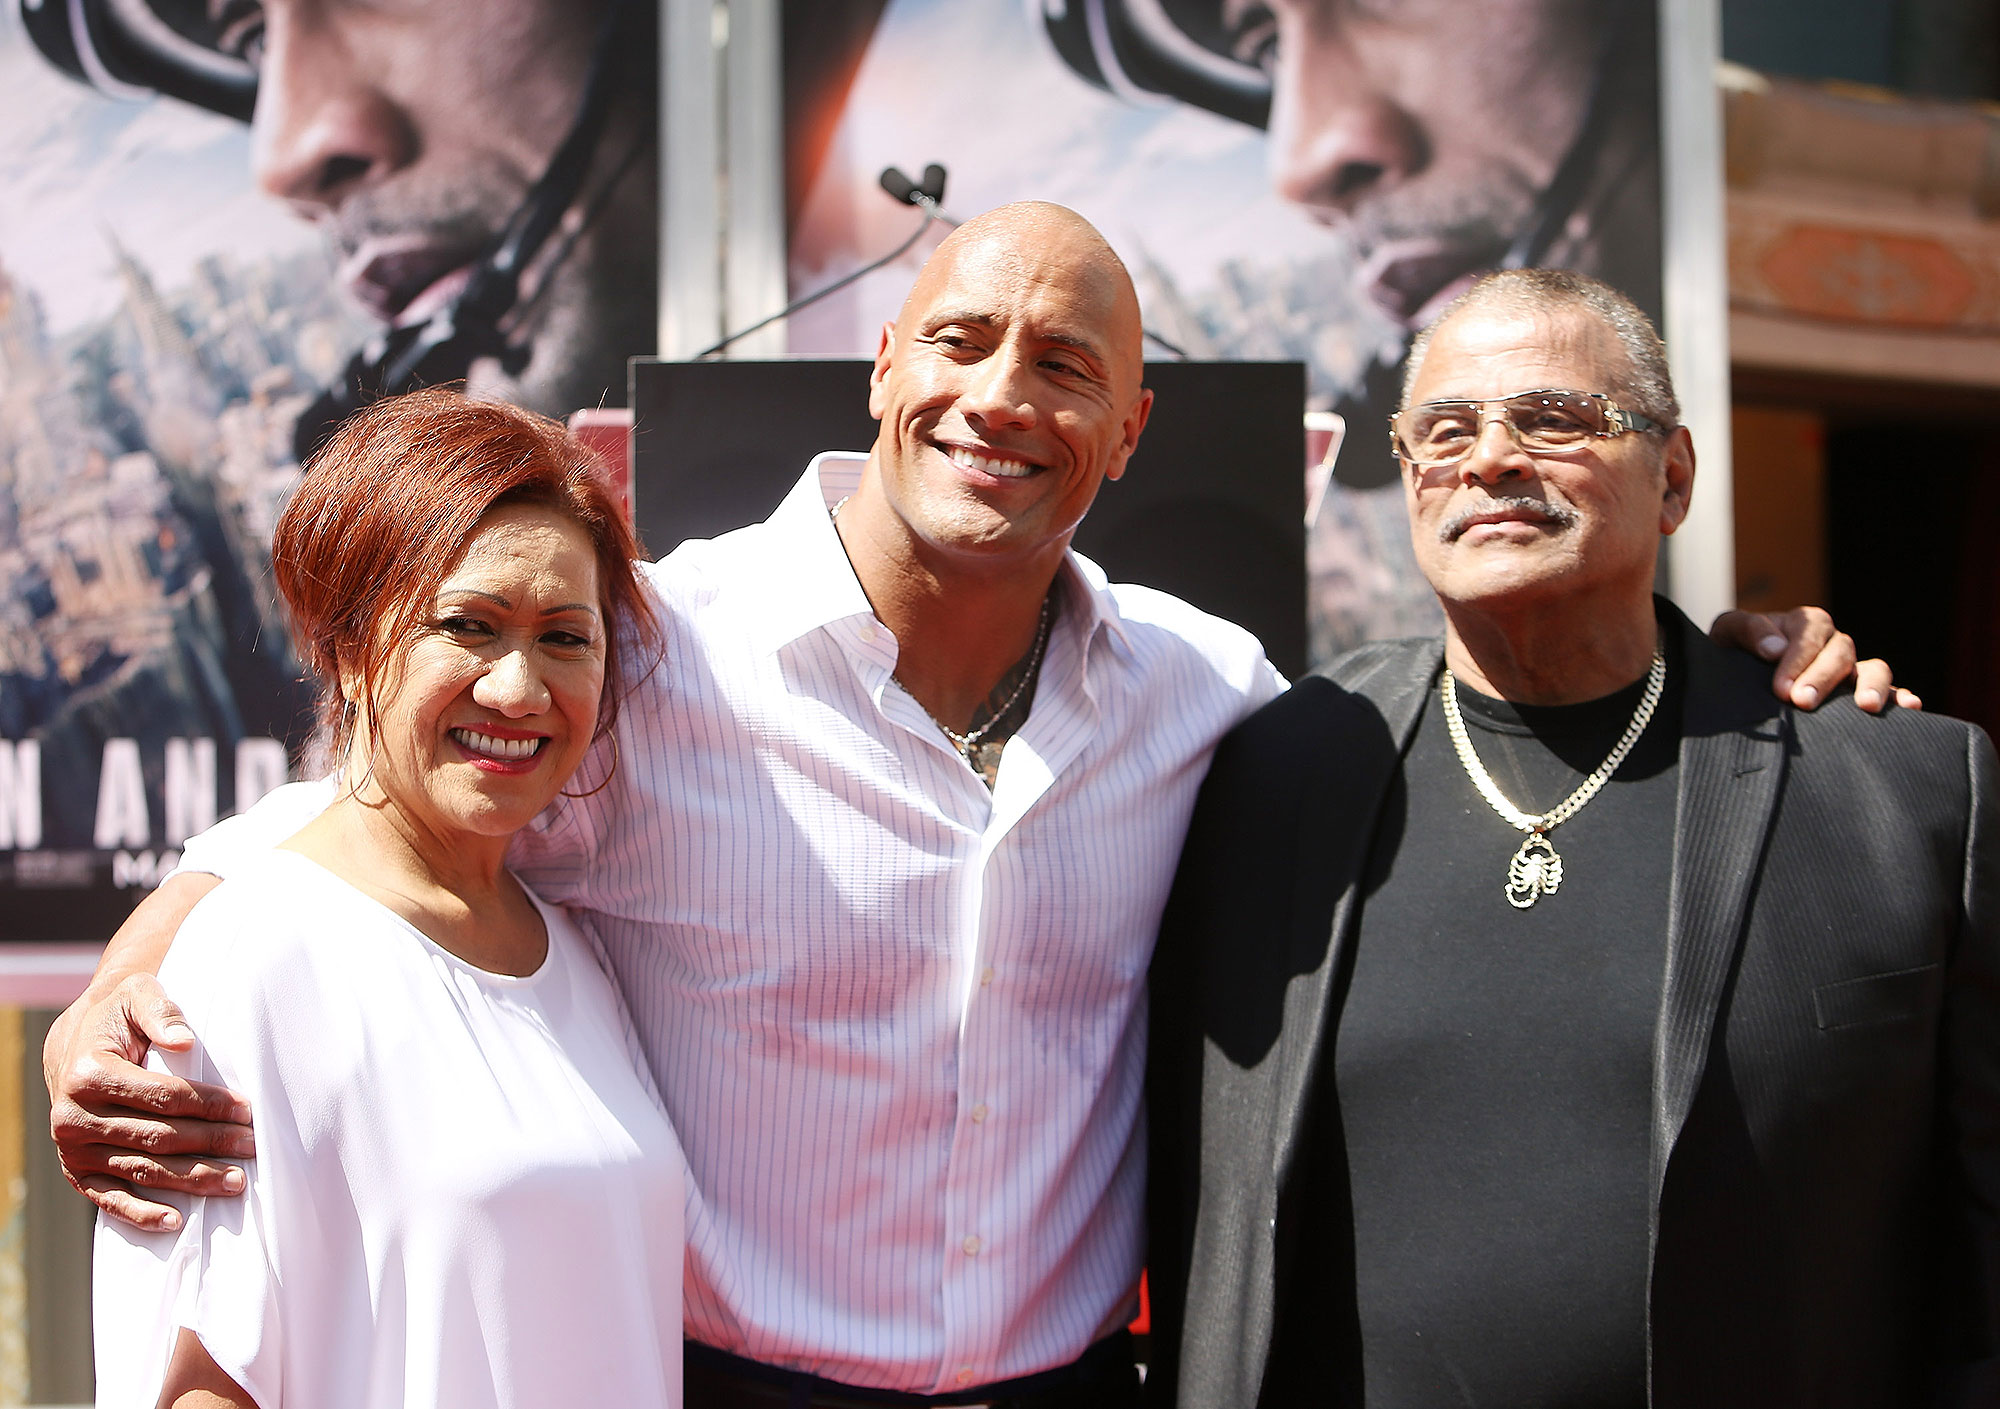 dwayne johnson father 10 Things You Didn't Know About Dwayne 'The Rock' Johnson